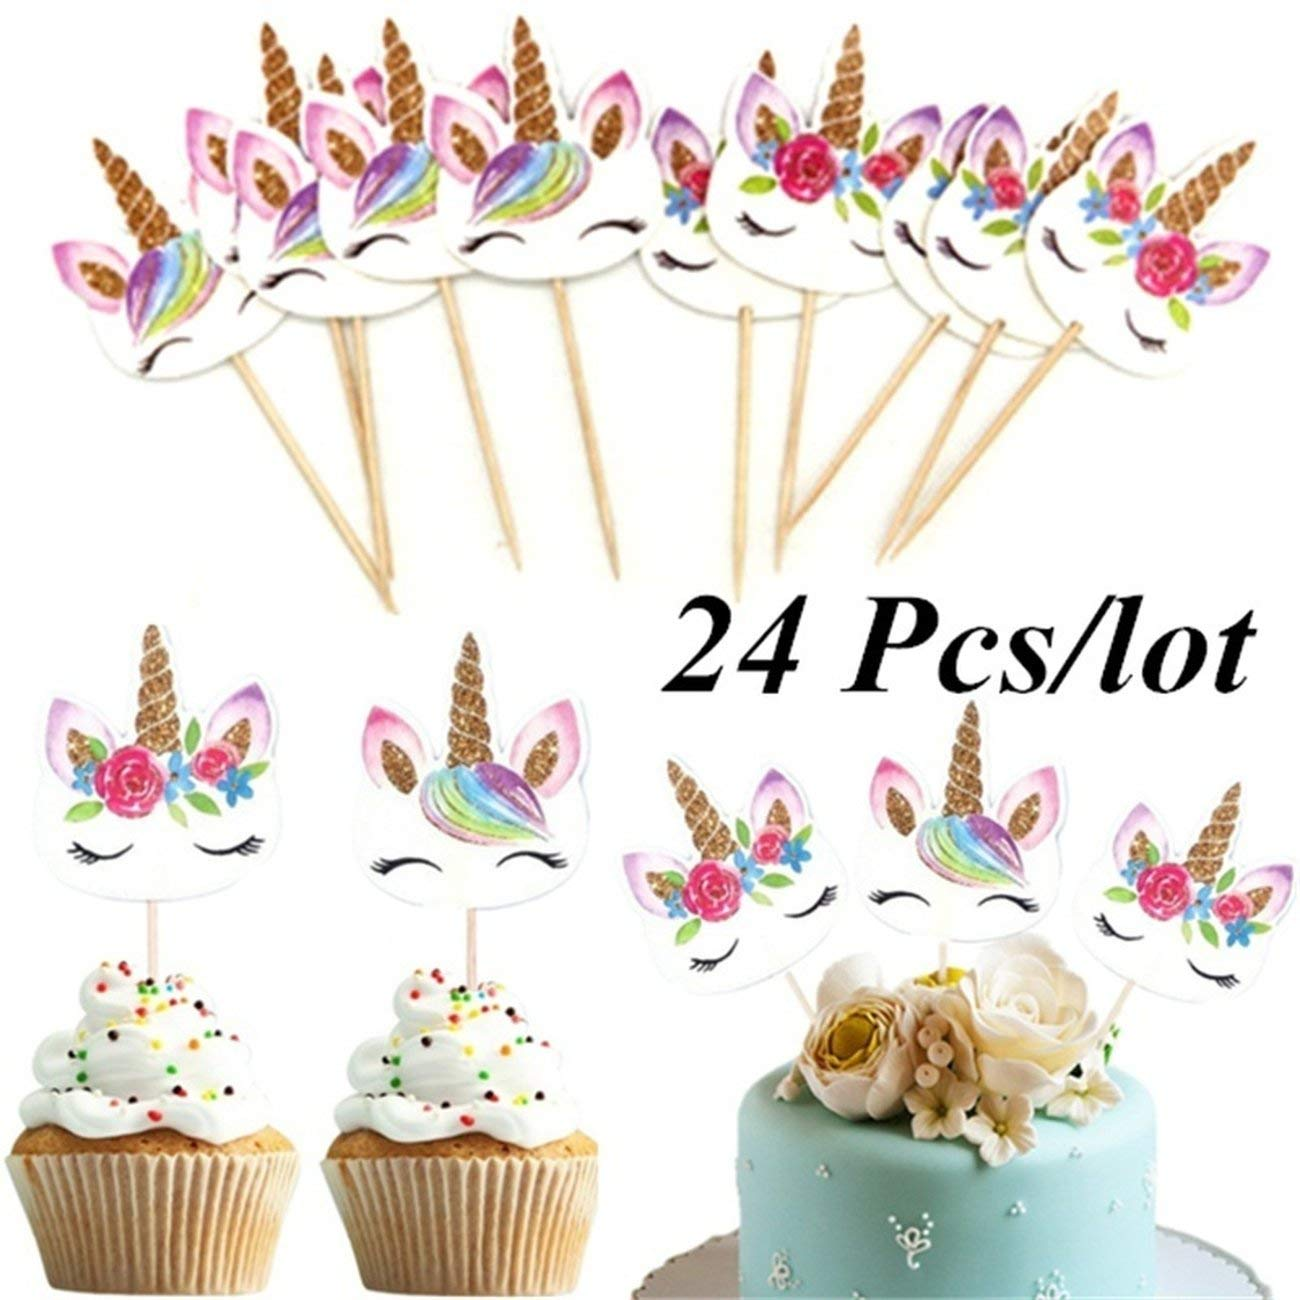 Elviray 24 Pz//Set Unicorn Cartoon Cupcake Toppers Cake Decorating Insert Card Pick Matrimonio Bambini Birthday Party Decor Forniture